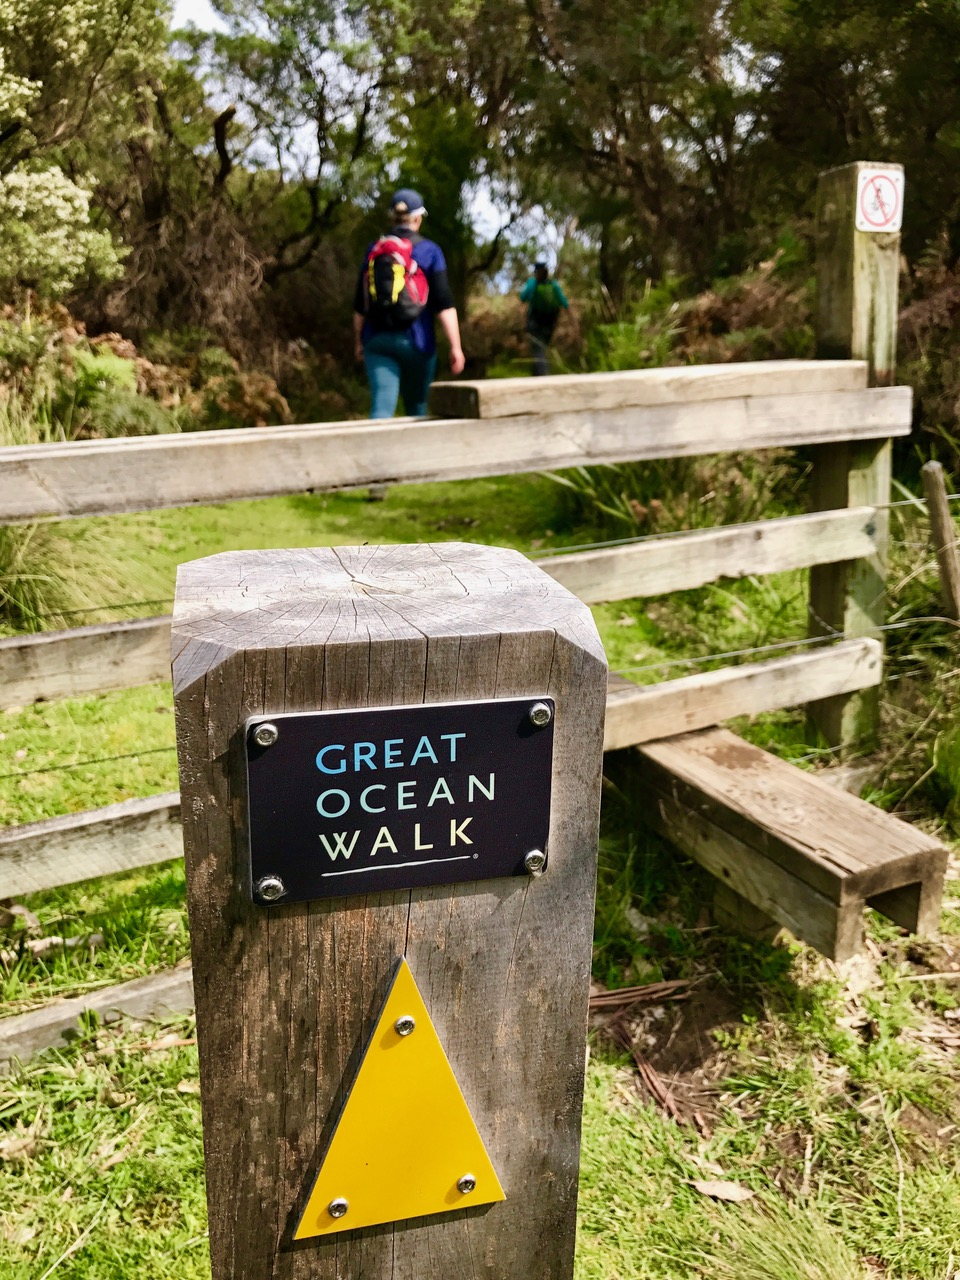 The group of walkers will tackle the stunning Great Ocean Walk.